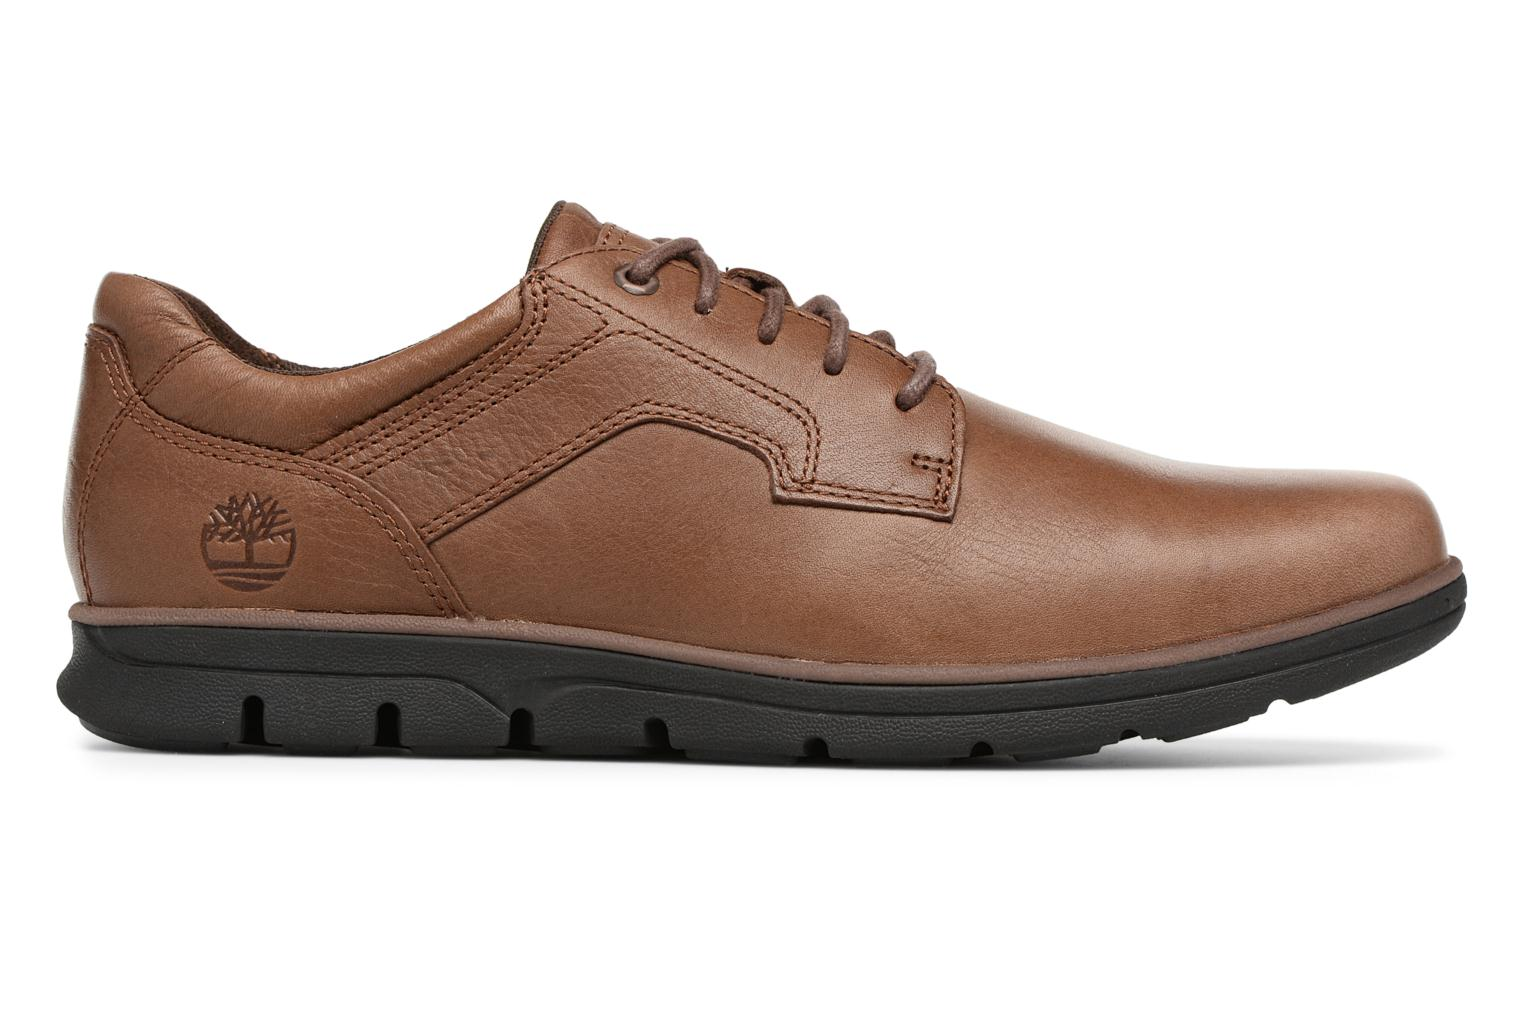 Chaussures à lacets Timberland Bradstreet Padded Collar Marron vue derrière